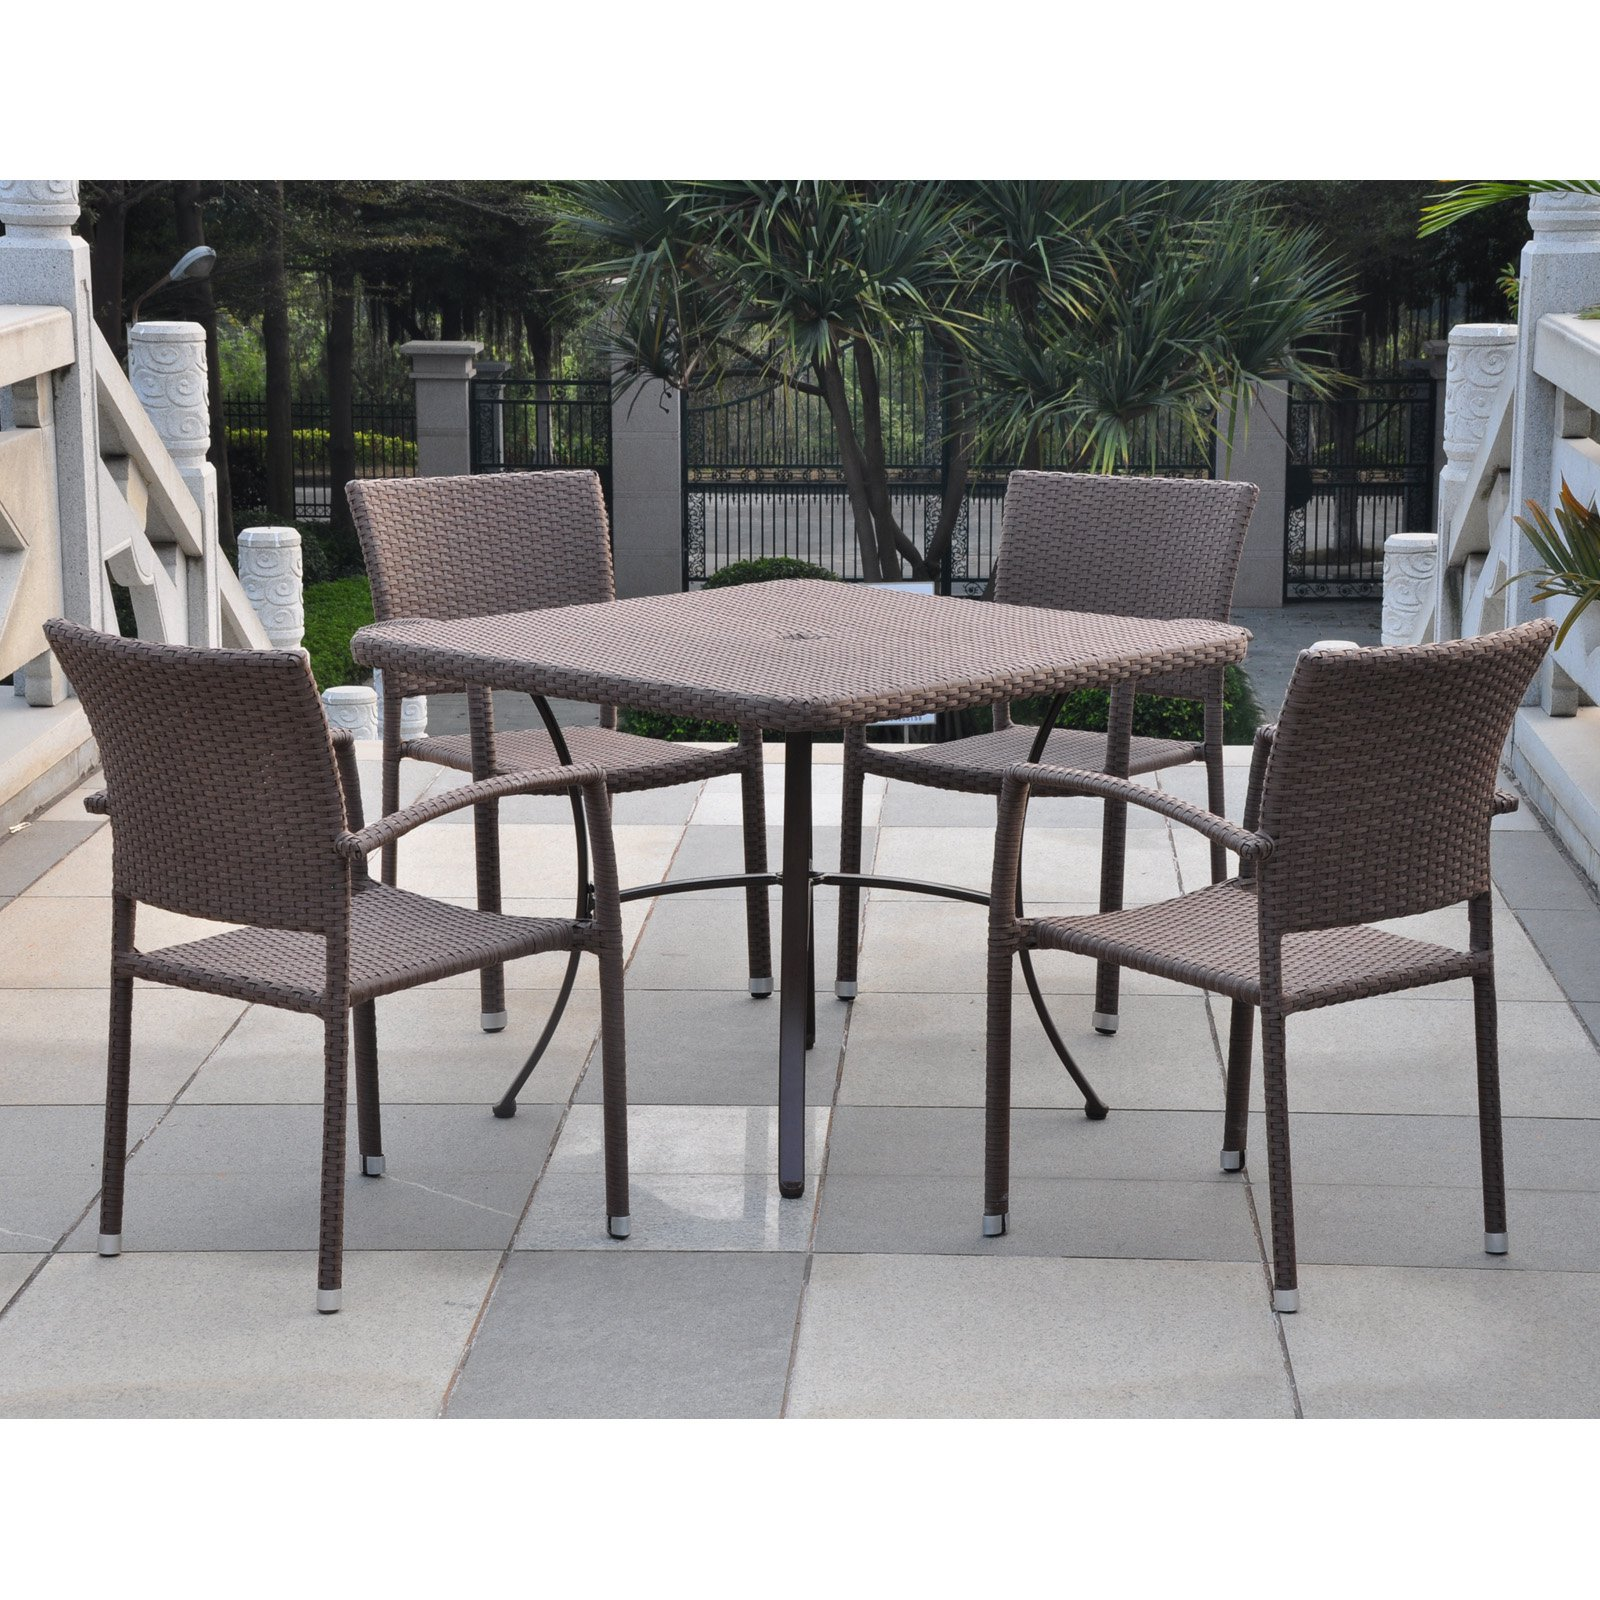 International Caravan Barcelona Contemporary Resin Wicker Patio Chair Set